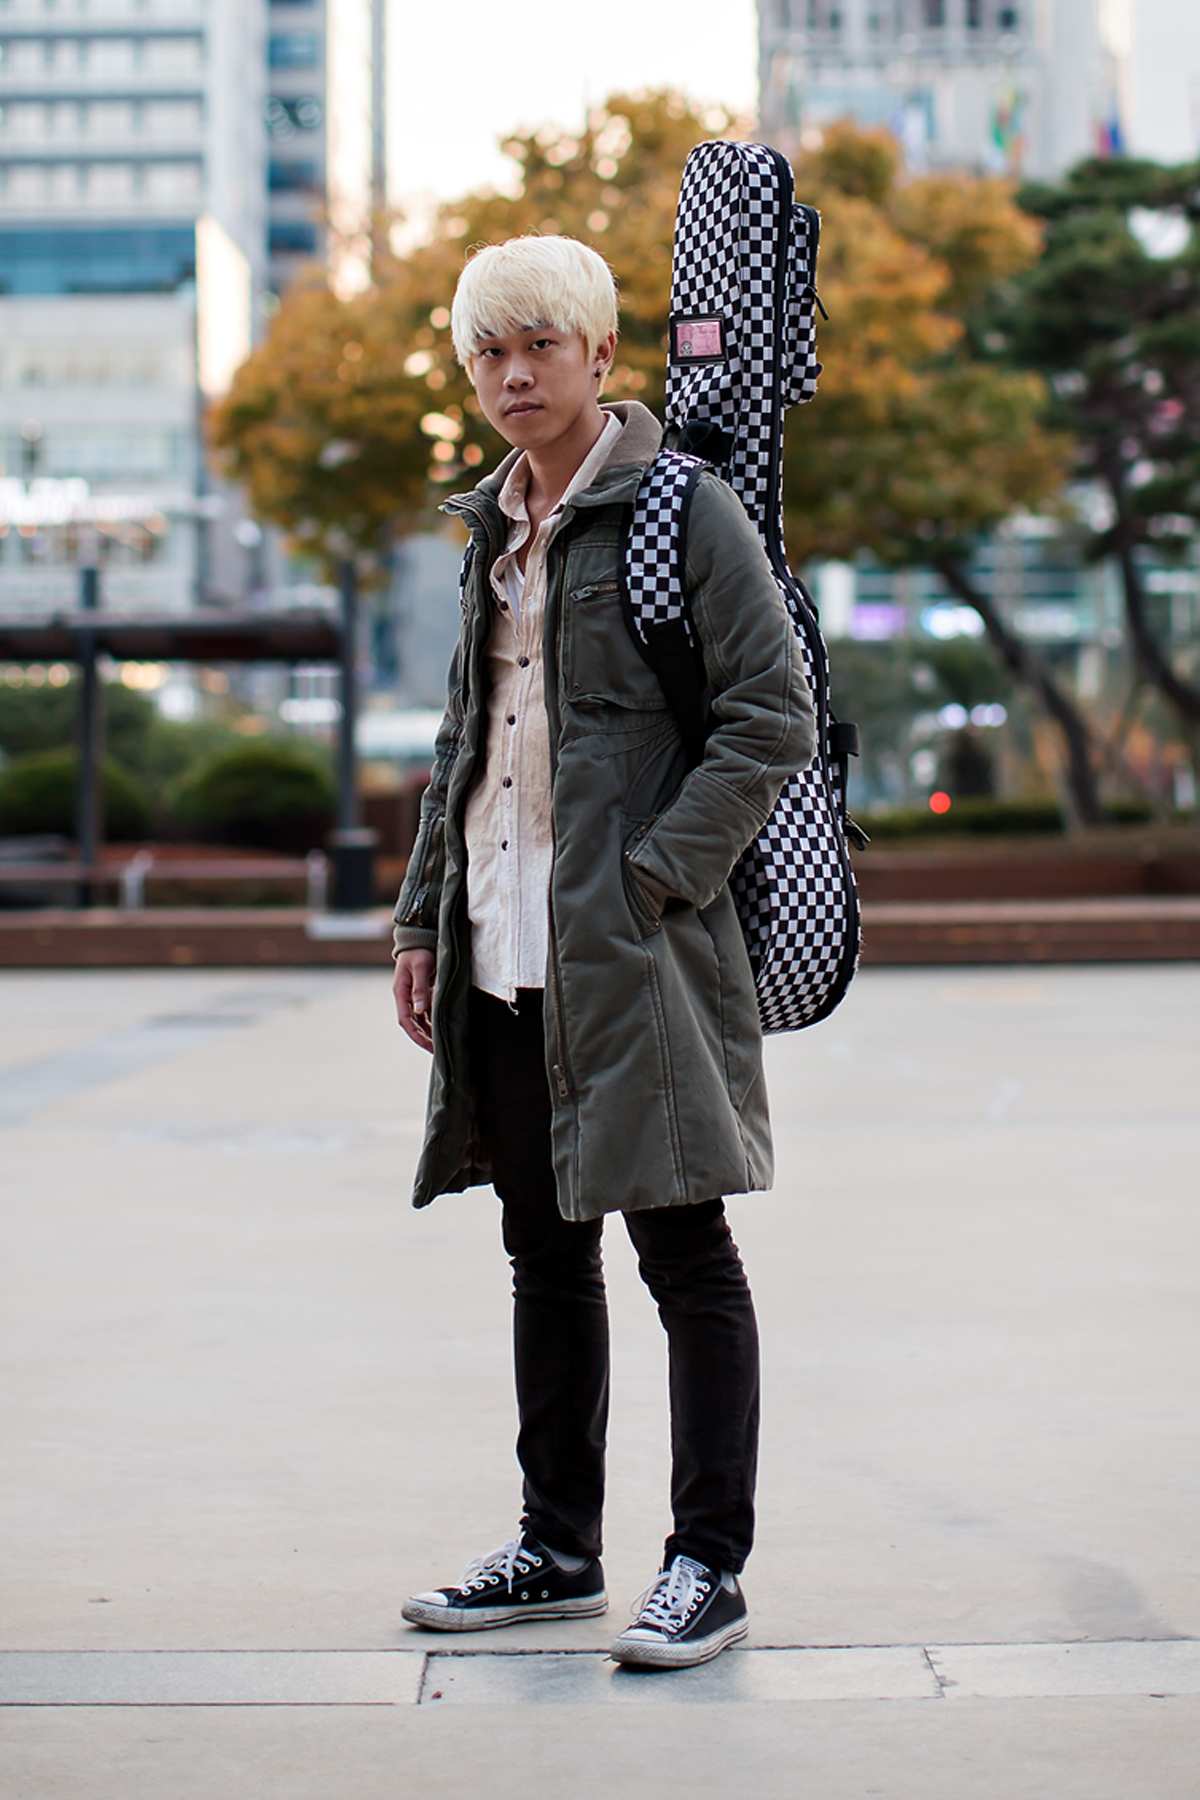 On the street… Jung Chanwoong Busan